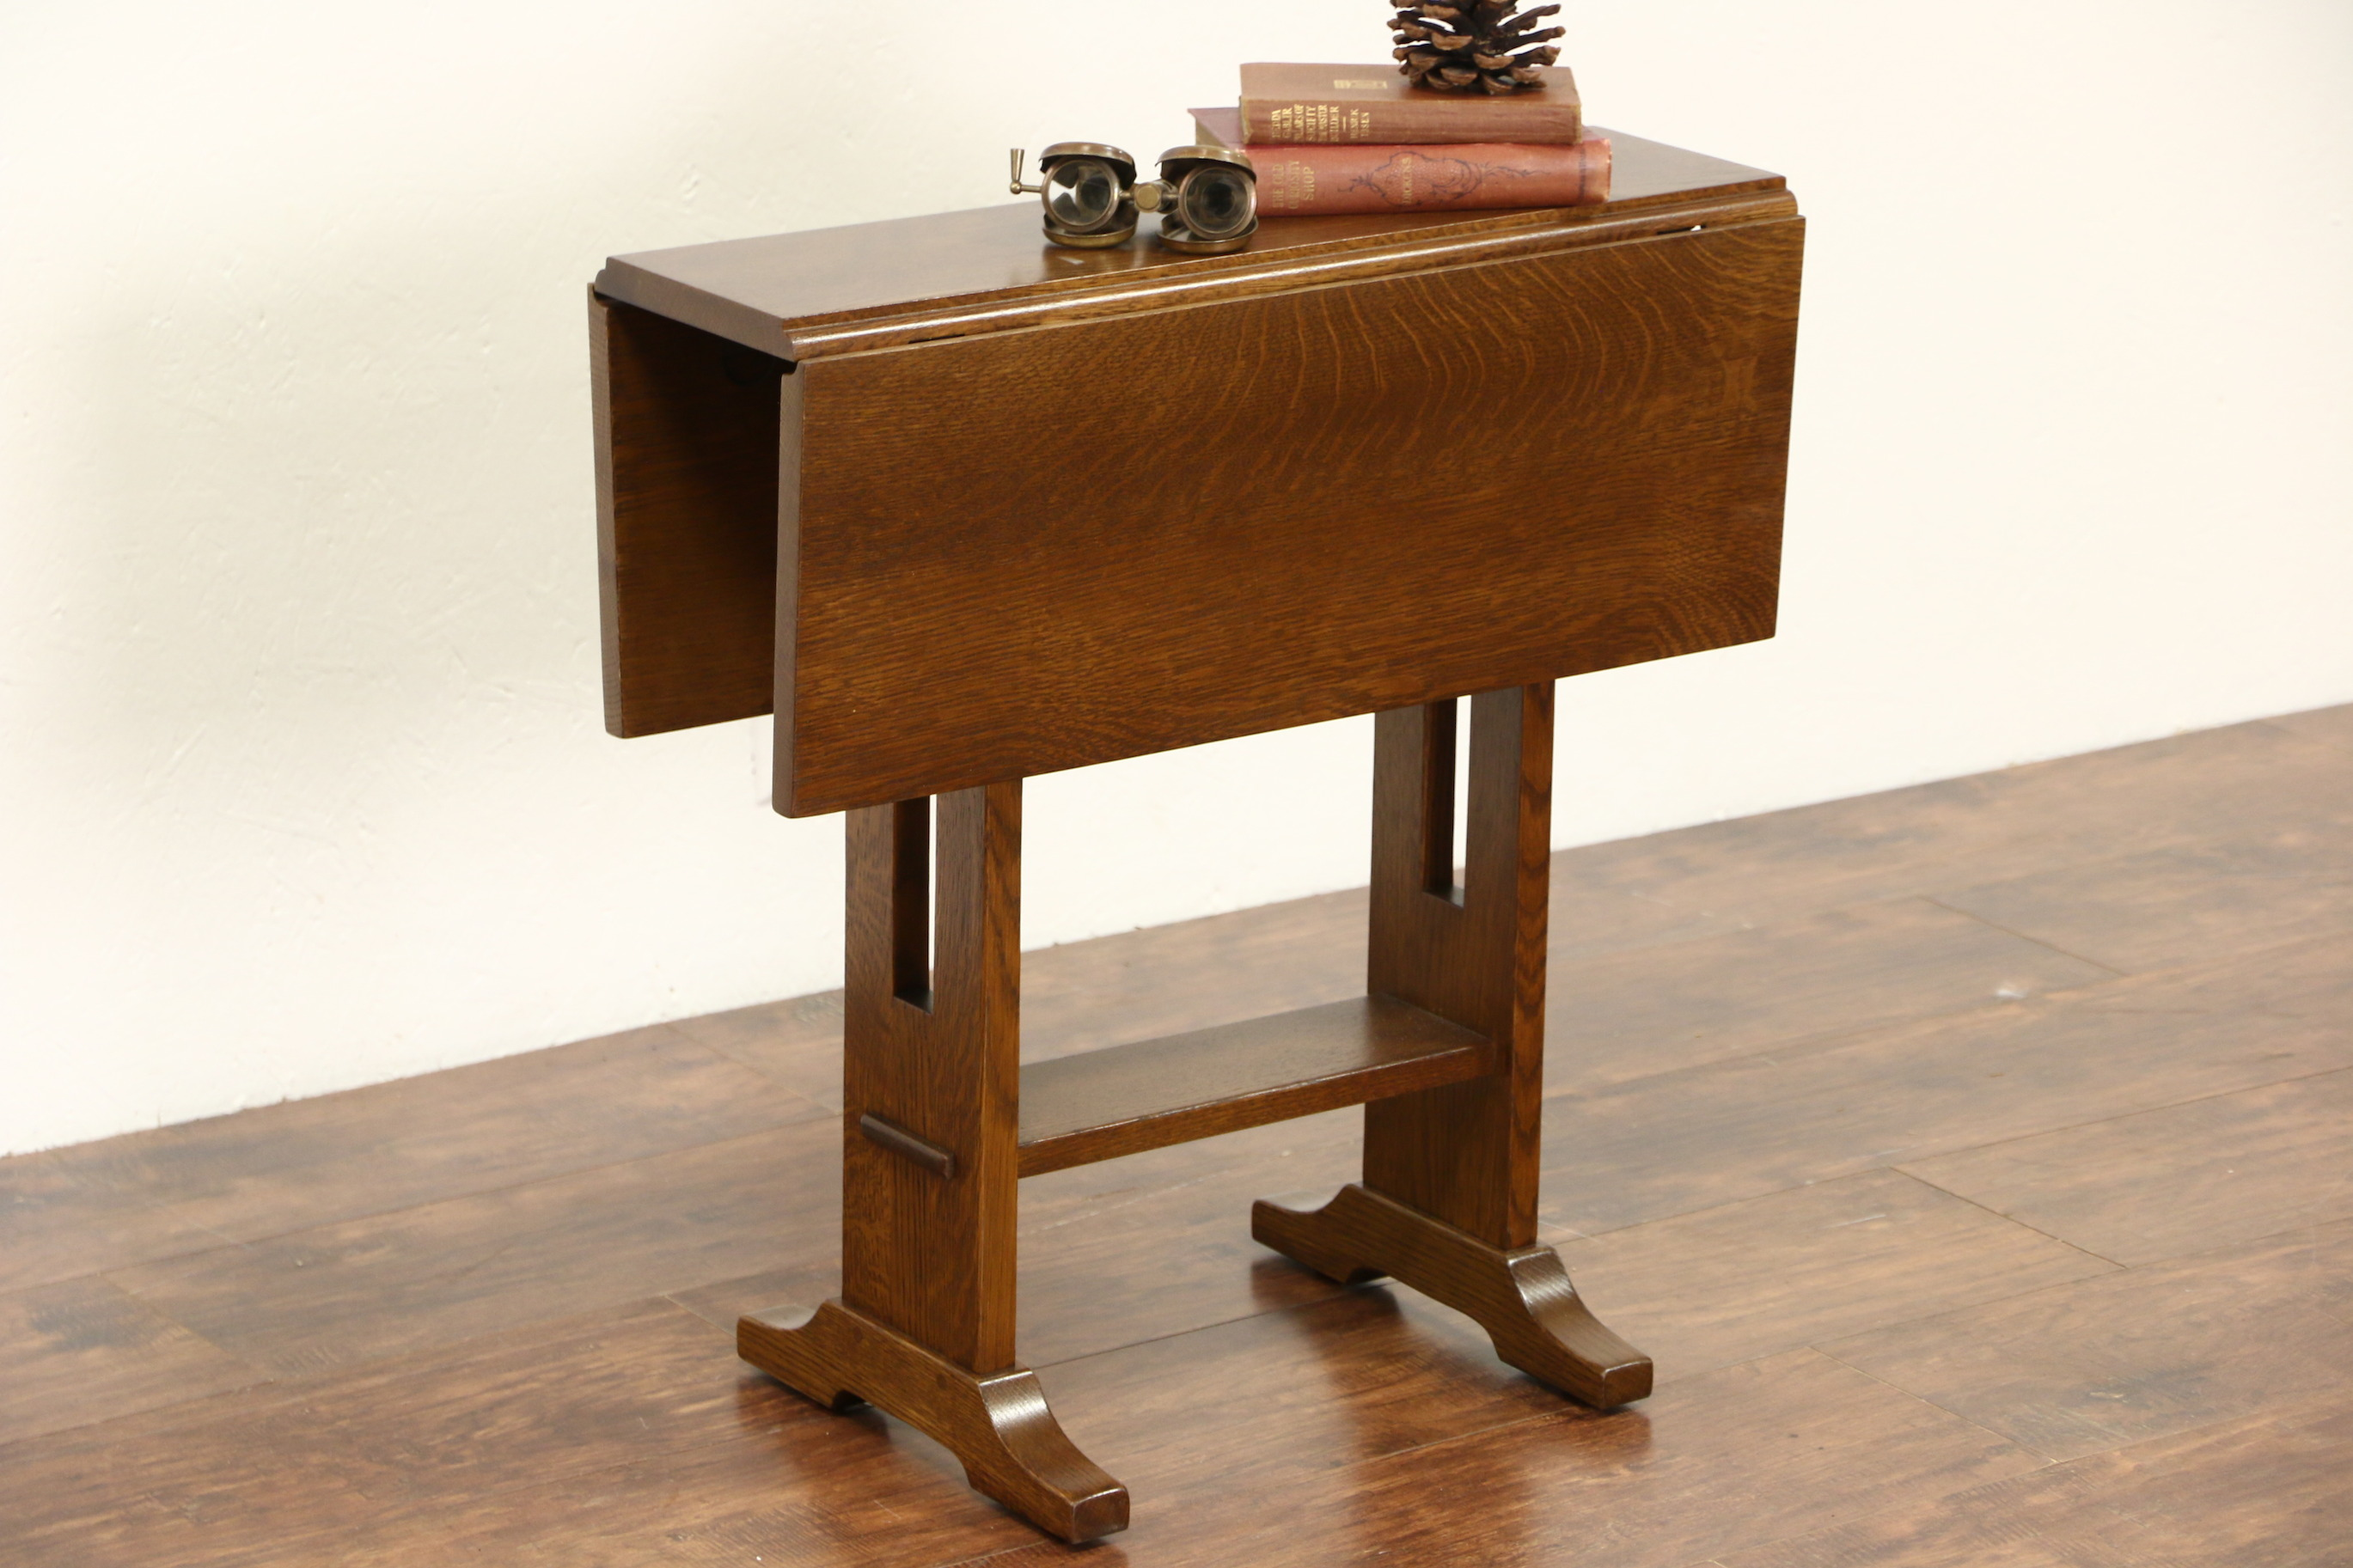 the fantastic best drop leaf end table idea jockboymusic sold stickley signed craftsman oak vintage chairside coffee accent pieces small square compact furniture for spaces gold